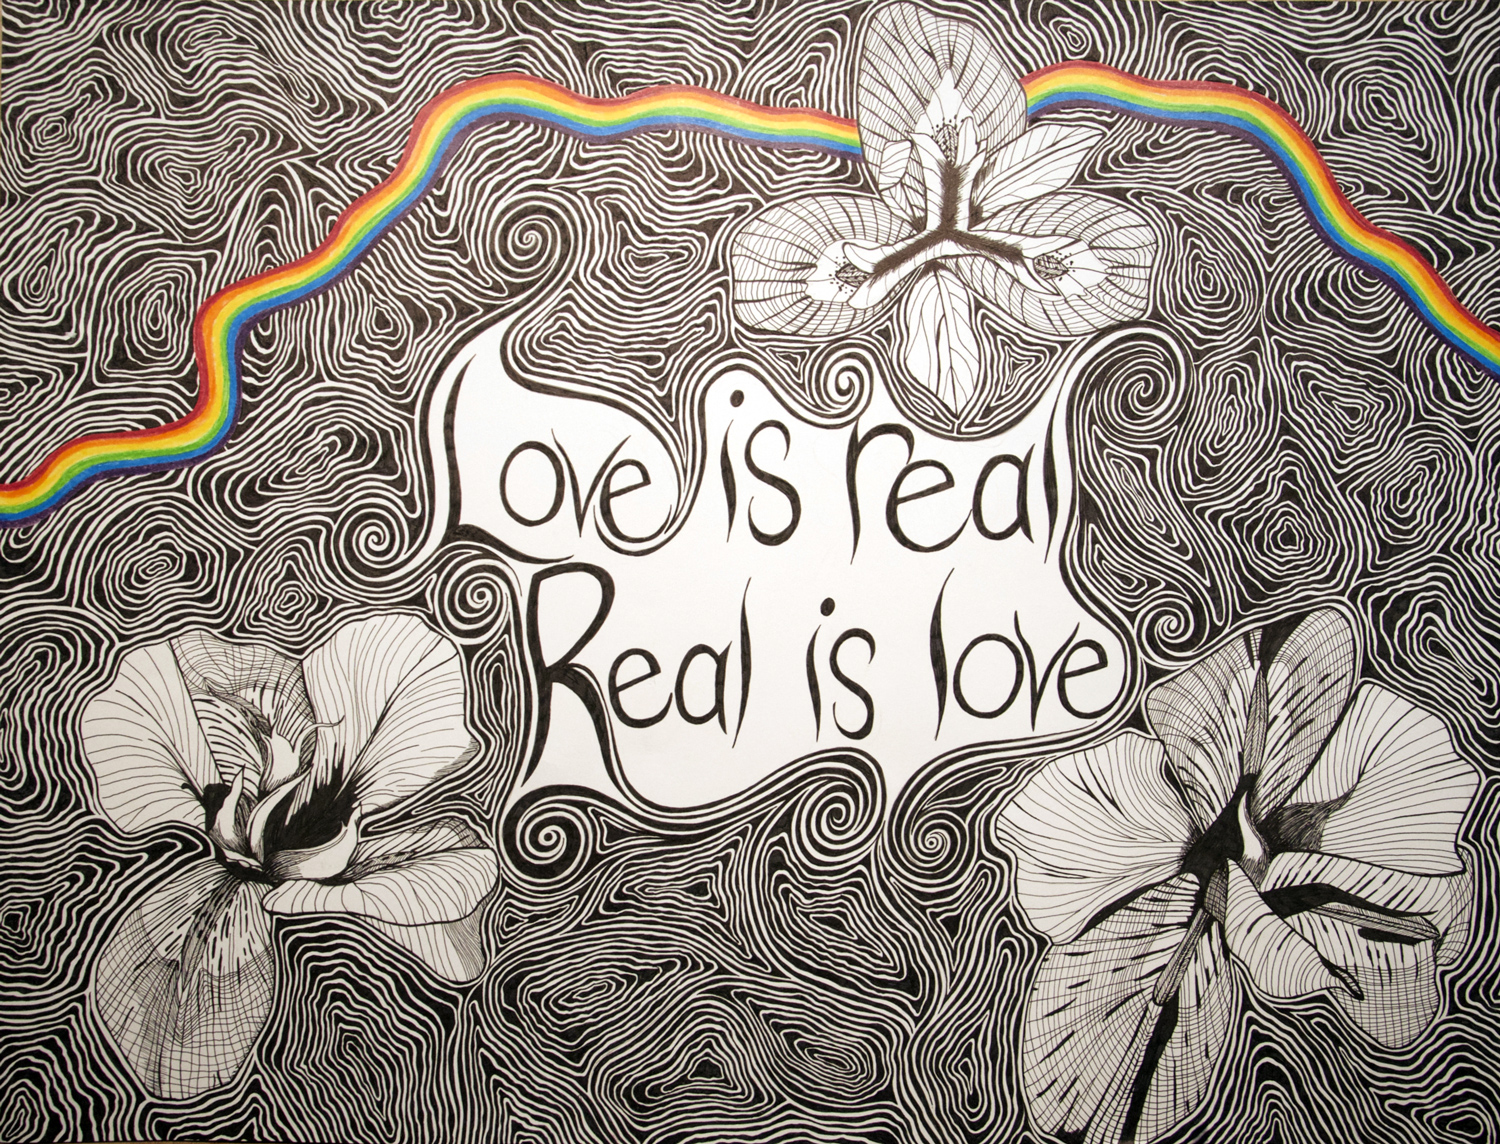 Love Is Real Flower drawing, by Tara Marolf